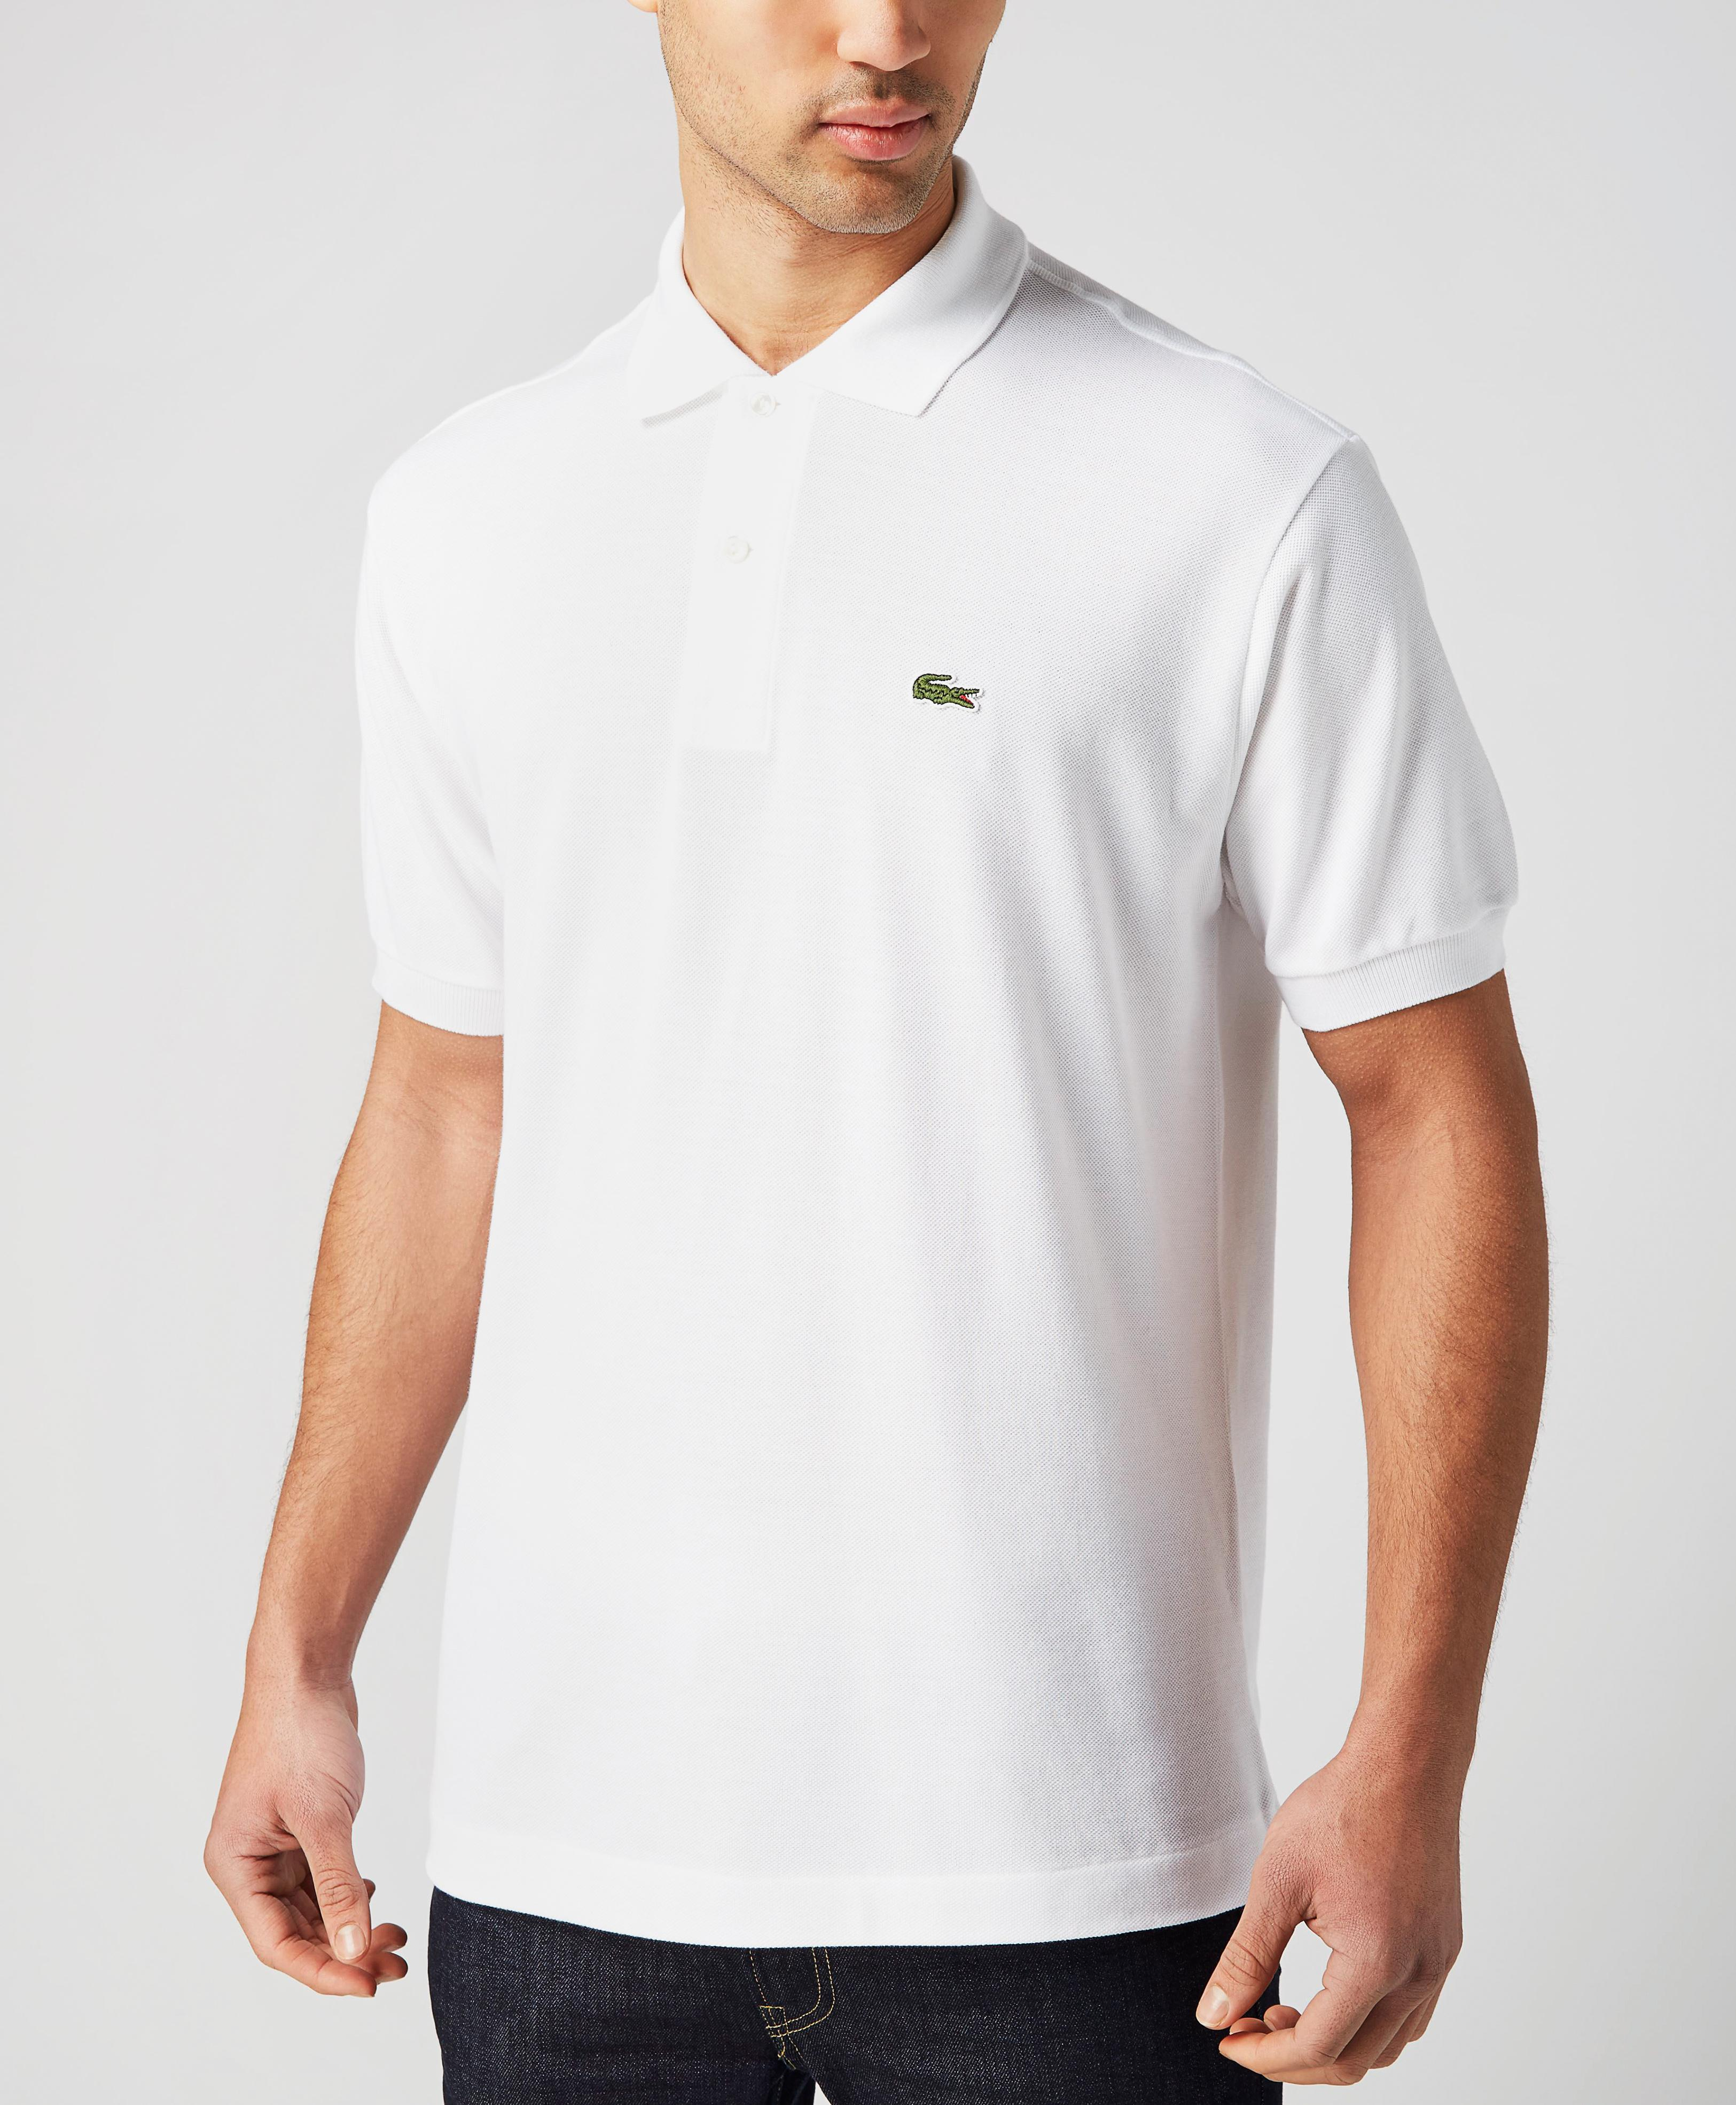 lacoste l1212 polo shirt in white for men lyst. Black Bedroom Furniture Sets. Home Design Ideas